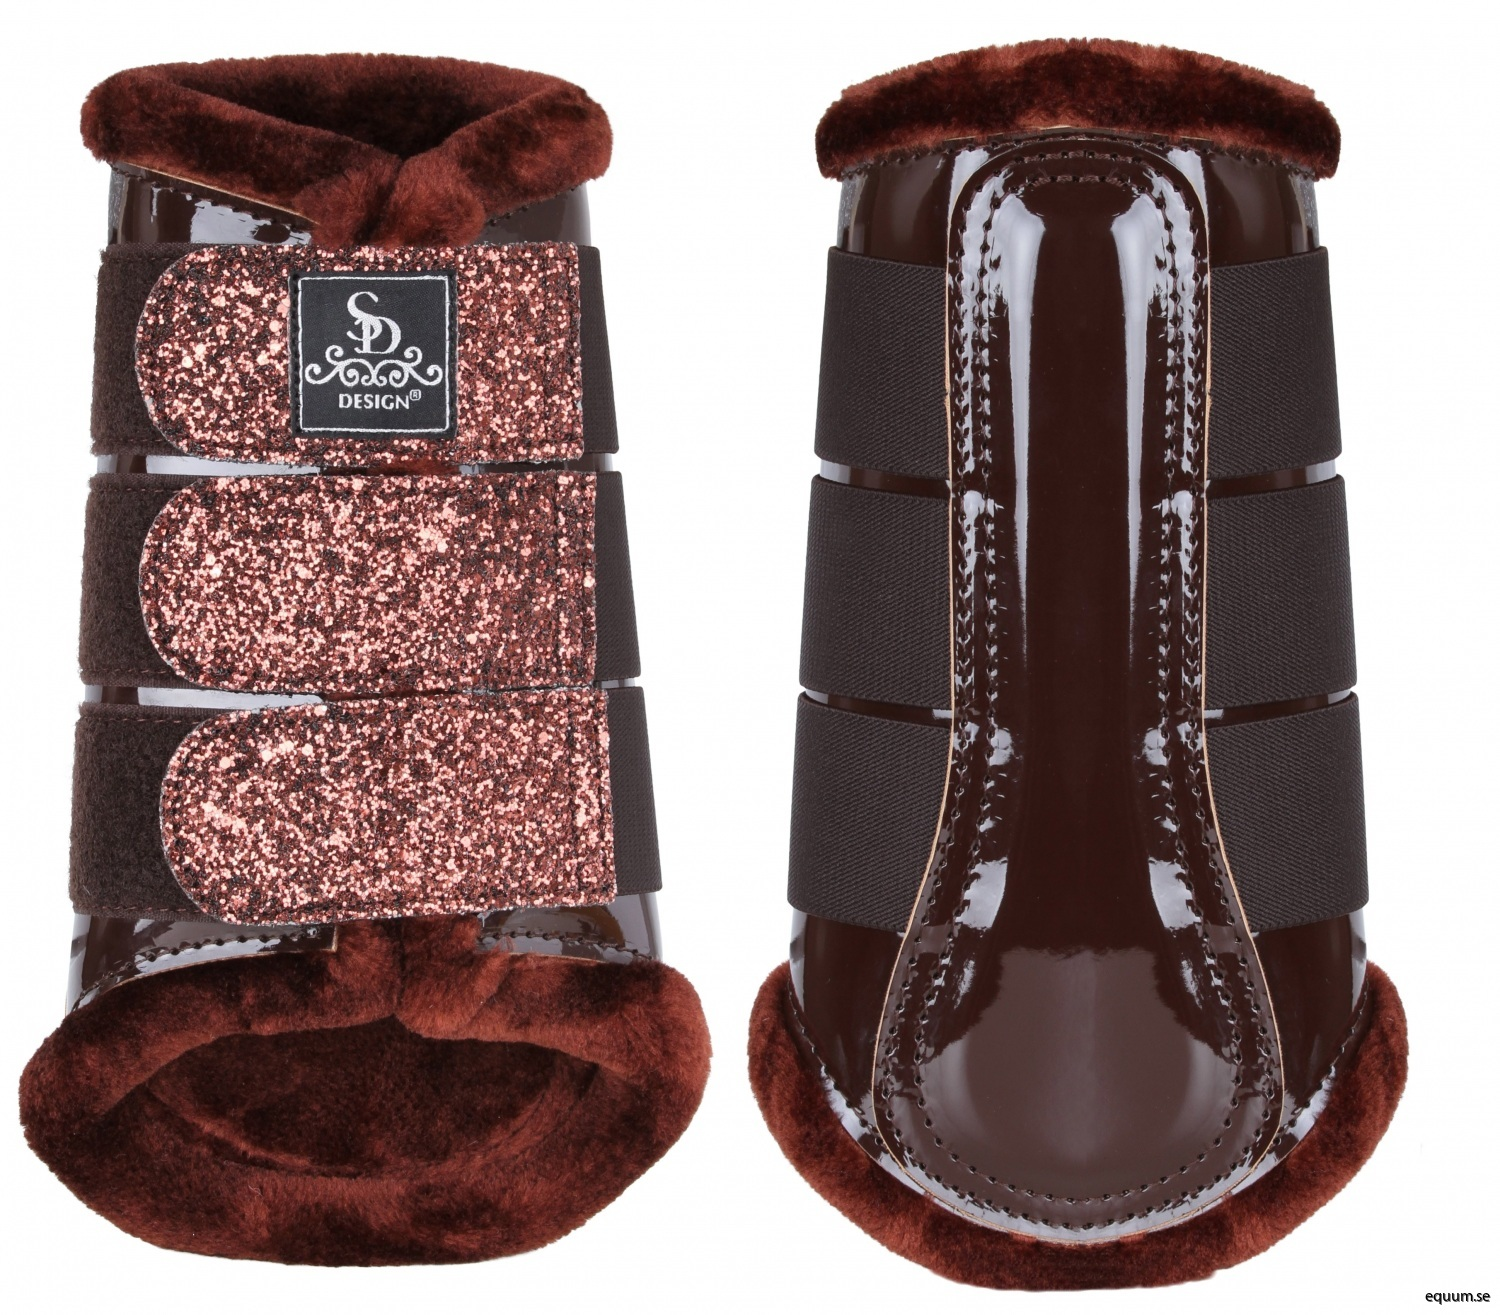 O-220-SD-Glitter-tendon-boots-brown